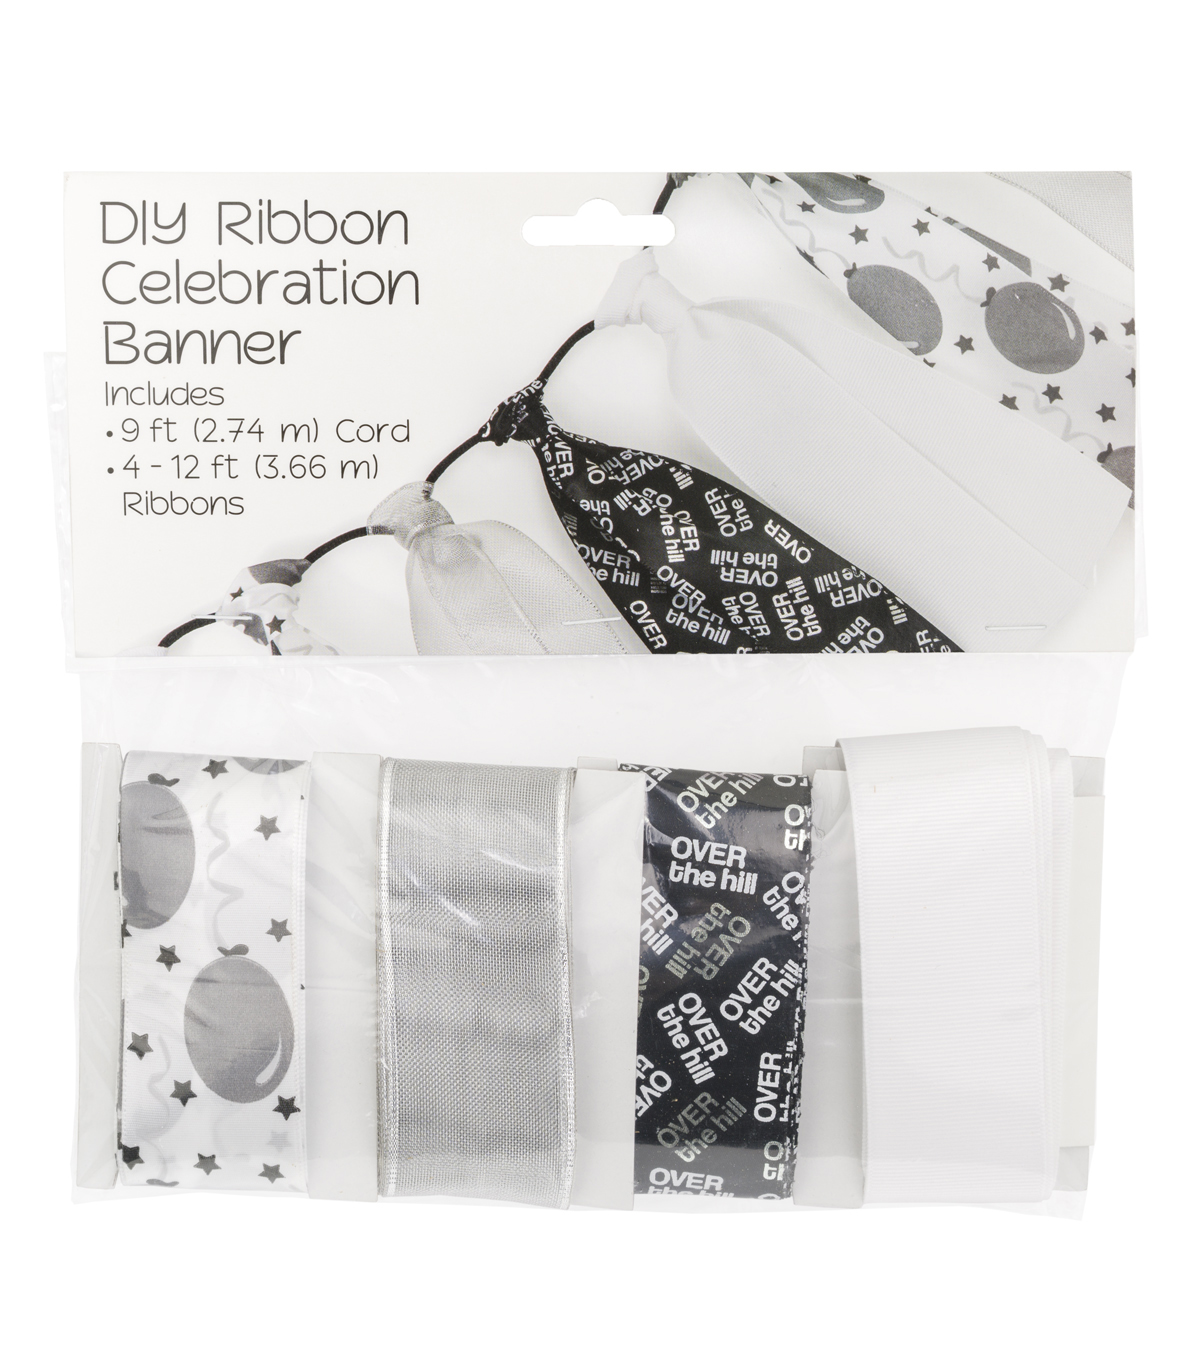 Offray DIY Ribbon Celebration Banner Kit-Over The Hill